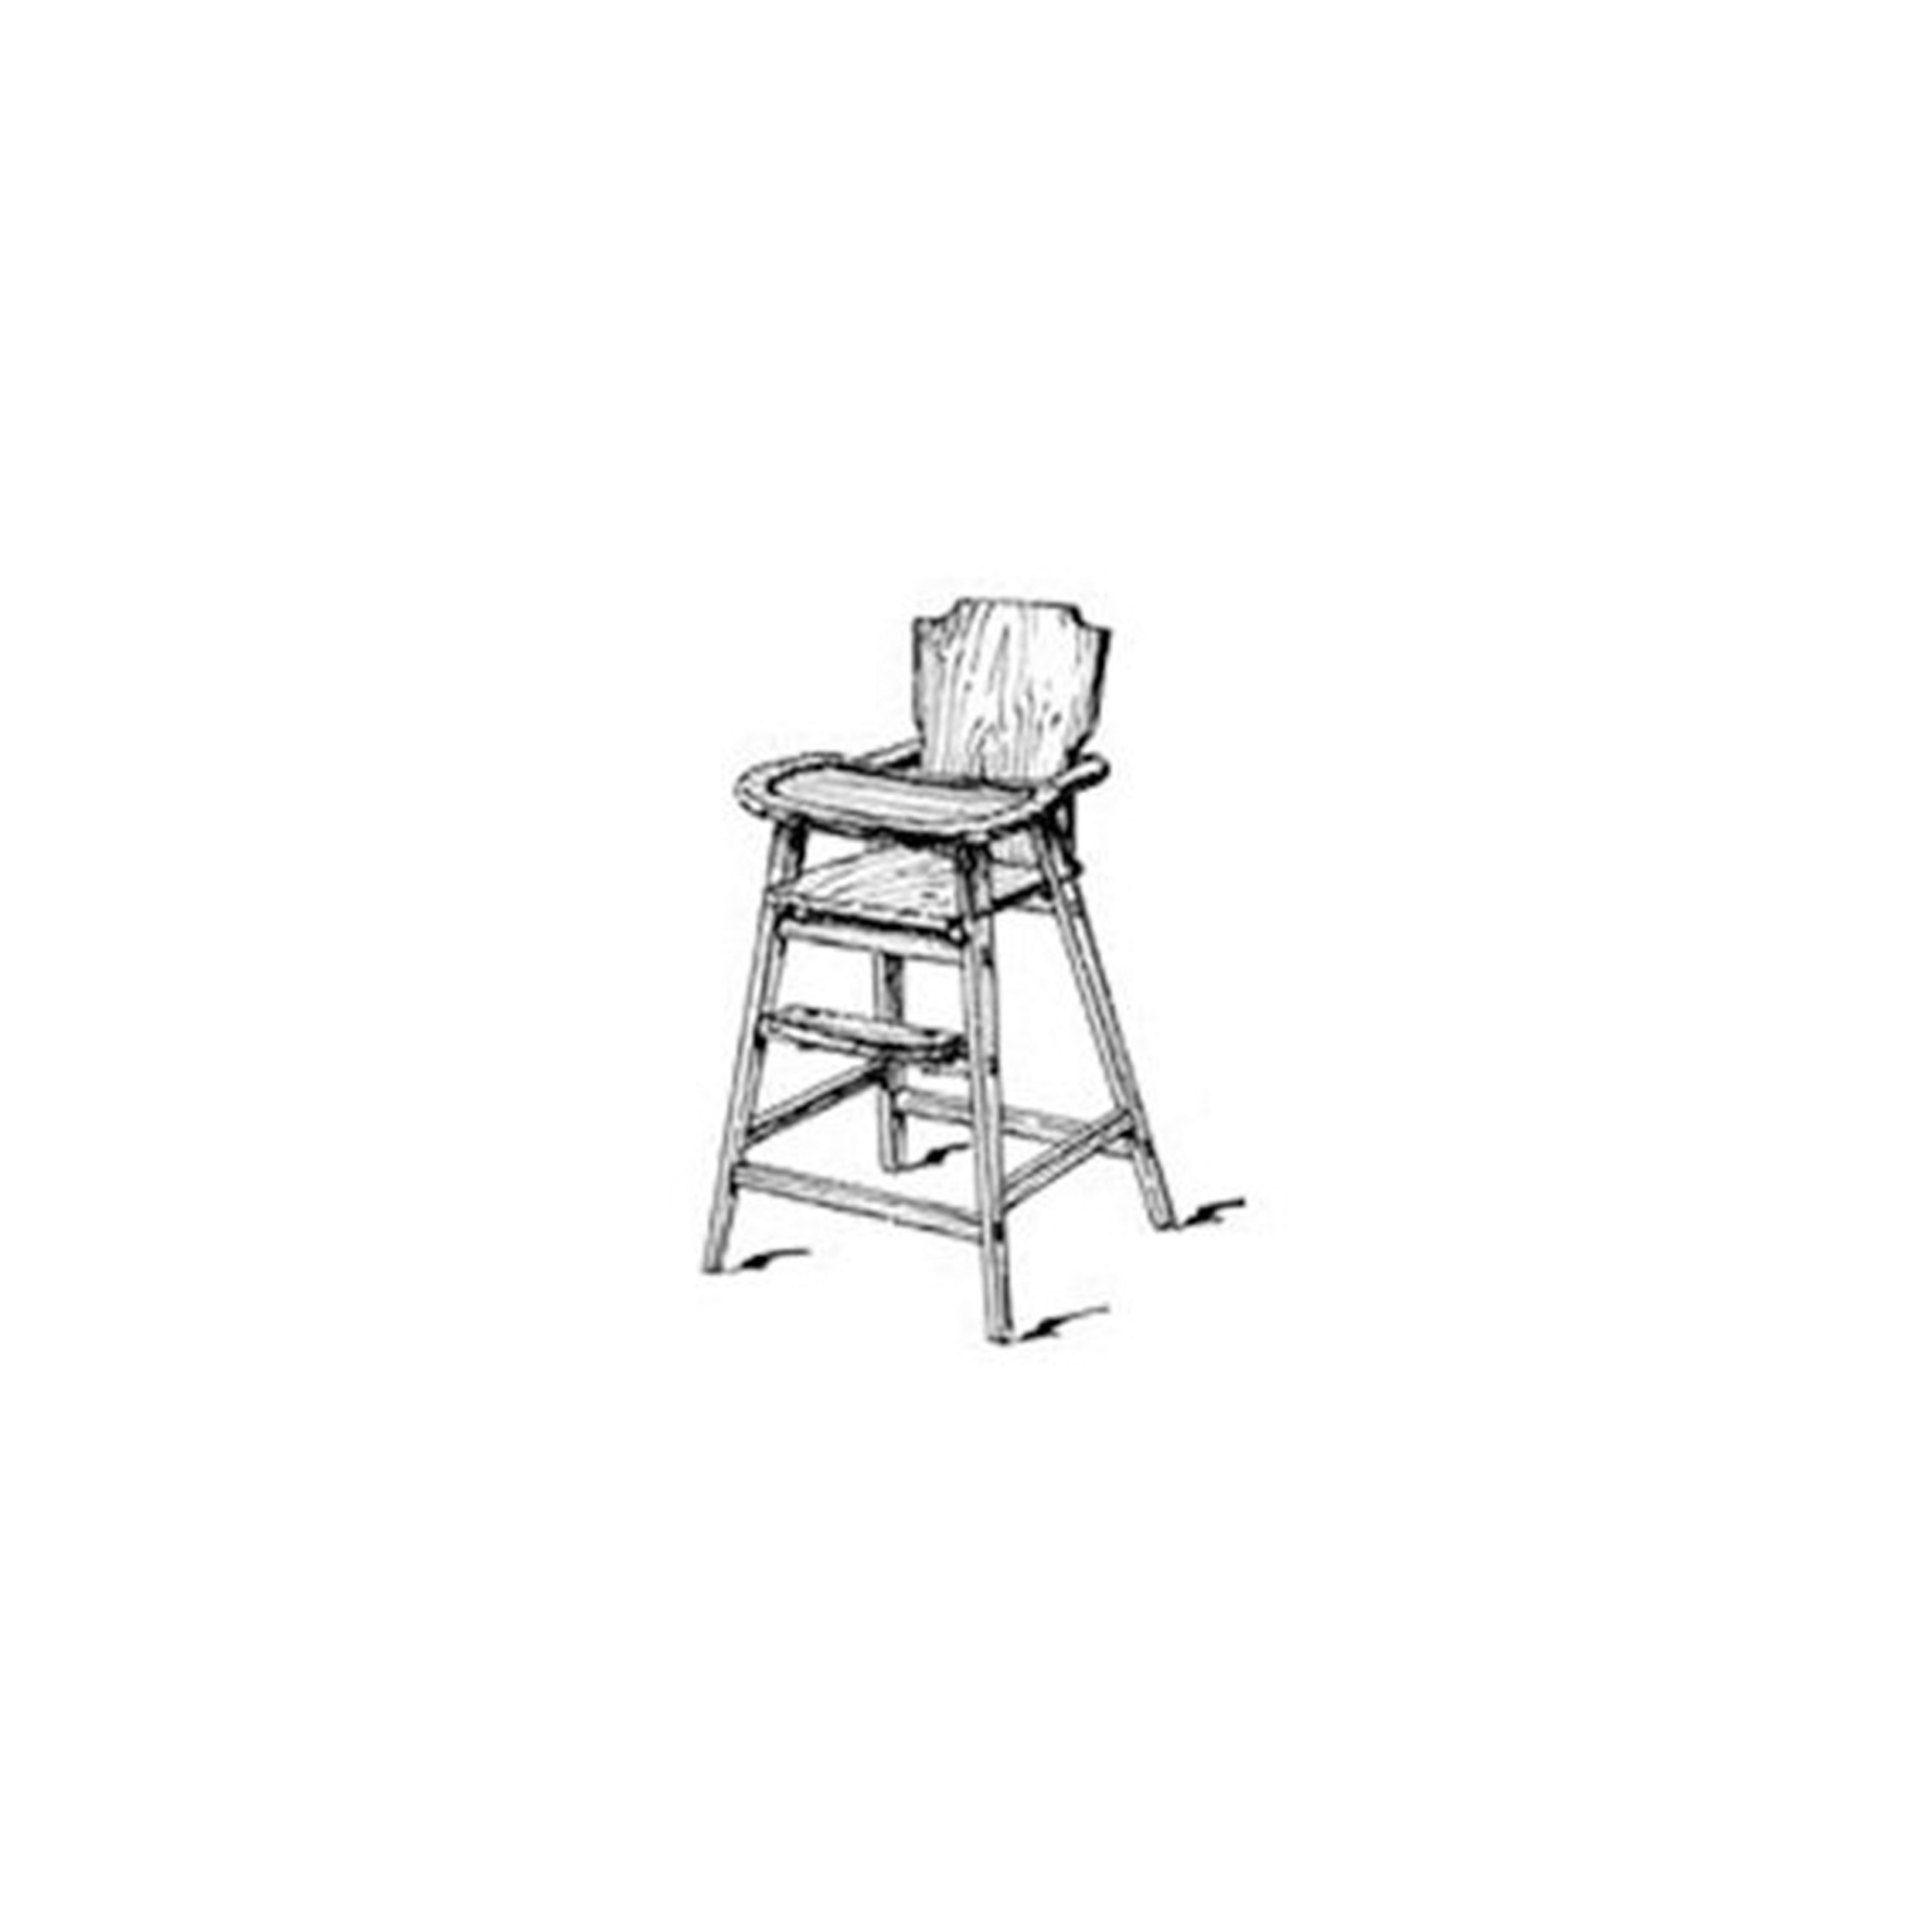 Woodworking Project Paper Plan to Build 60's Era High Chair